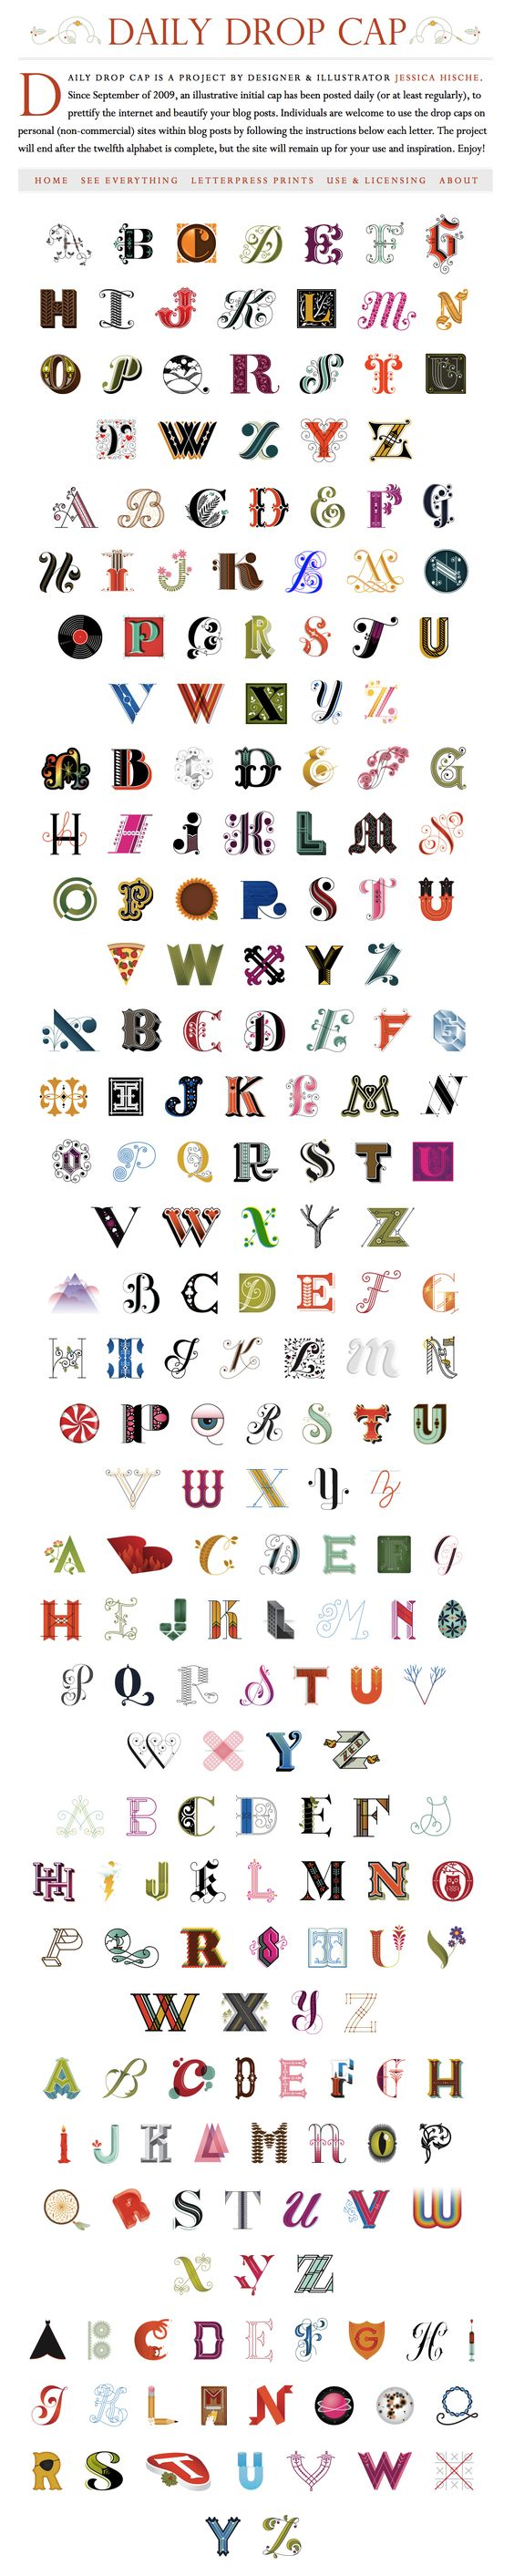 Jessica Hische began her 12th and final alphabet as part of her incredible daily drop cap project. Jessica has made the entire library freely usable for non-commercial projects.